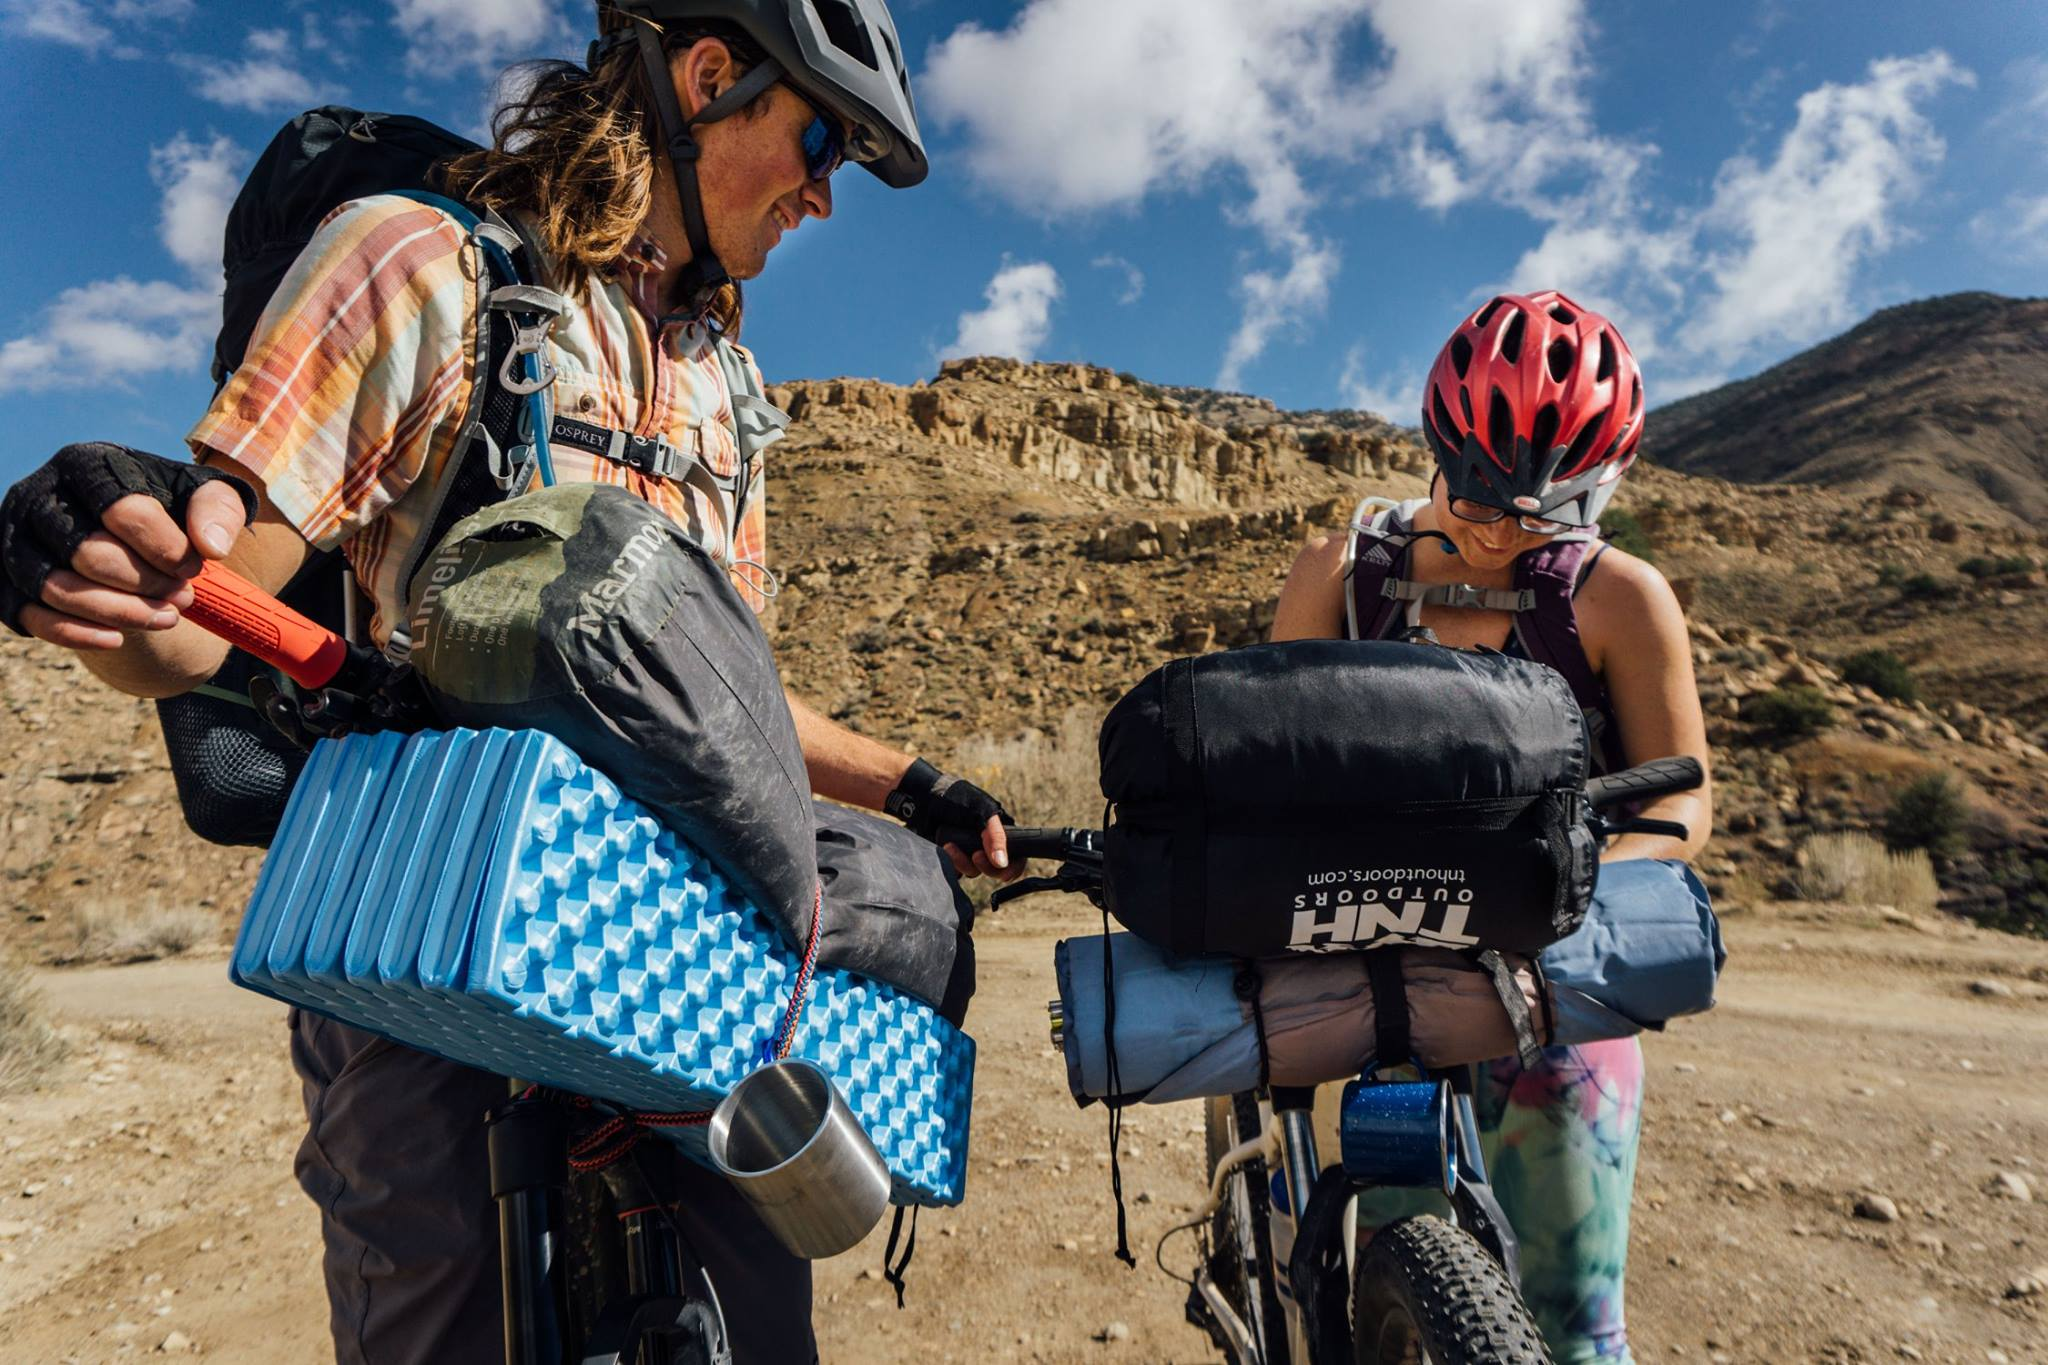 Sean and Autumn successfully completed a Bikepacking trip with no dedicated bags to speak of! Getting creative with straps can suffice just fine for overnighters.